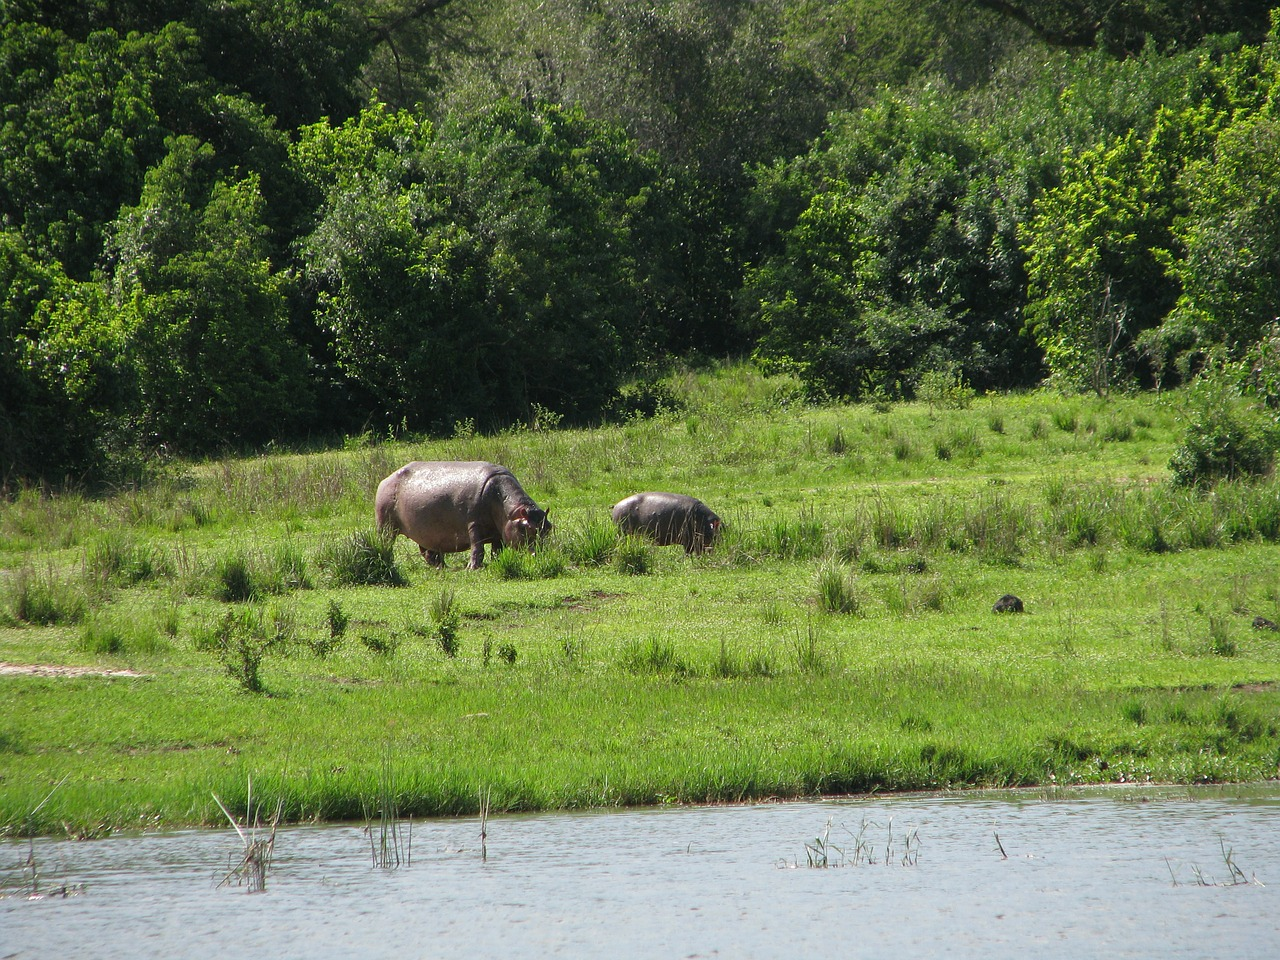 rivers greenery hippopotamus free photo